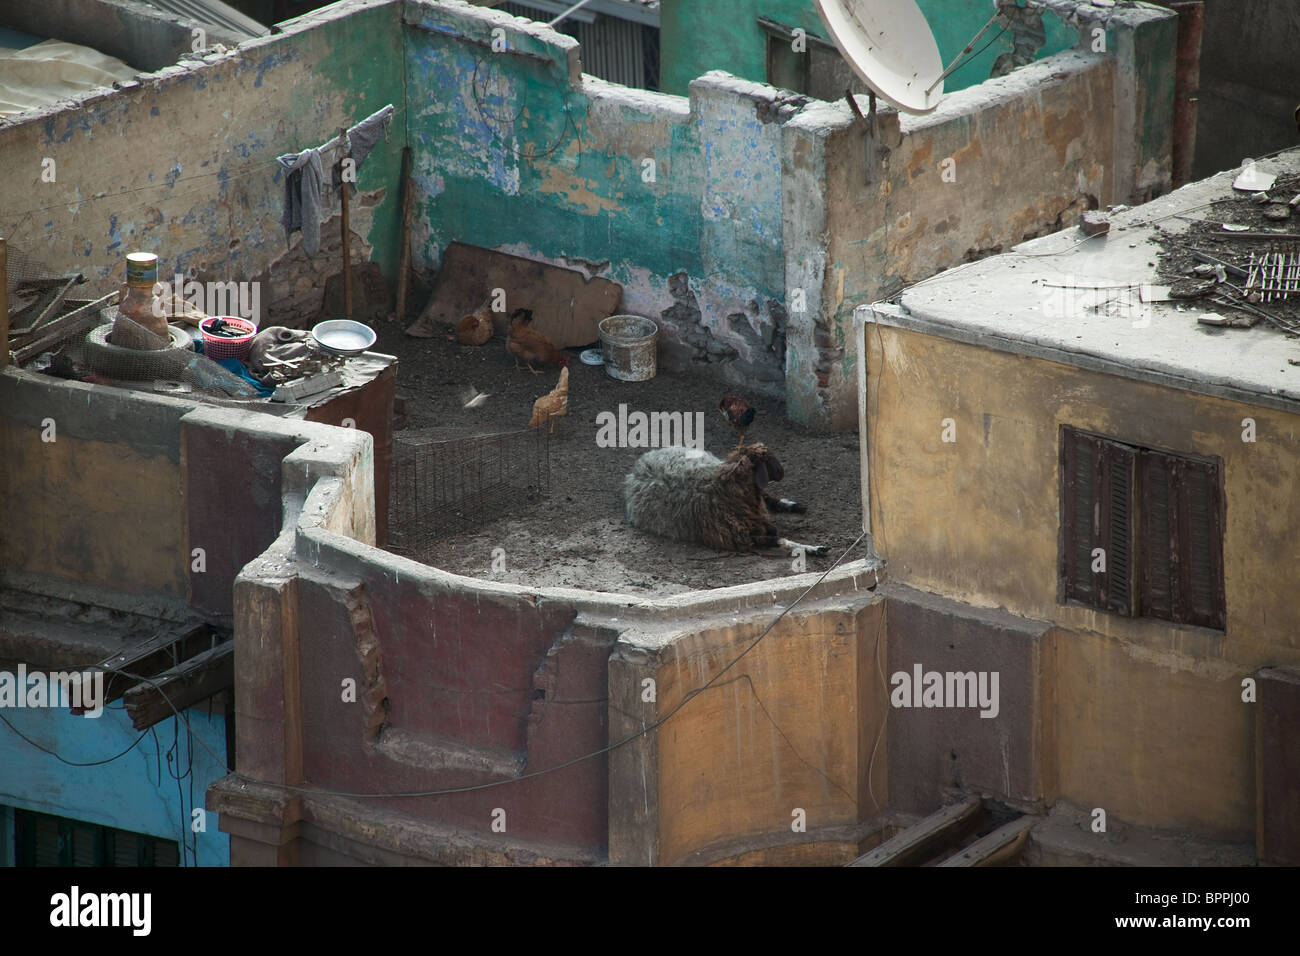 The roof of the Cairo in Egypte - Stock Image